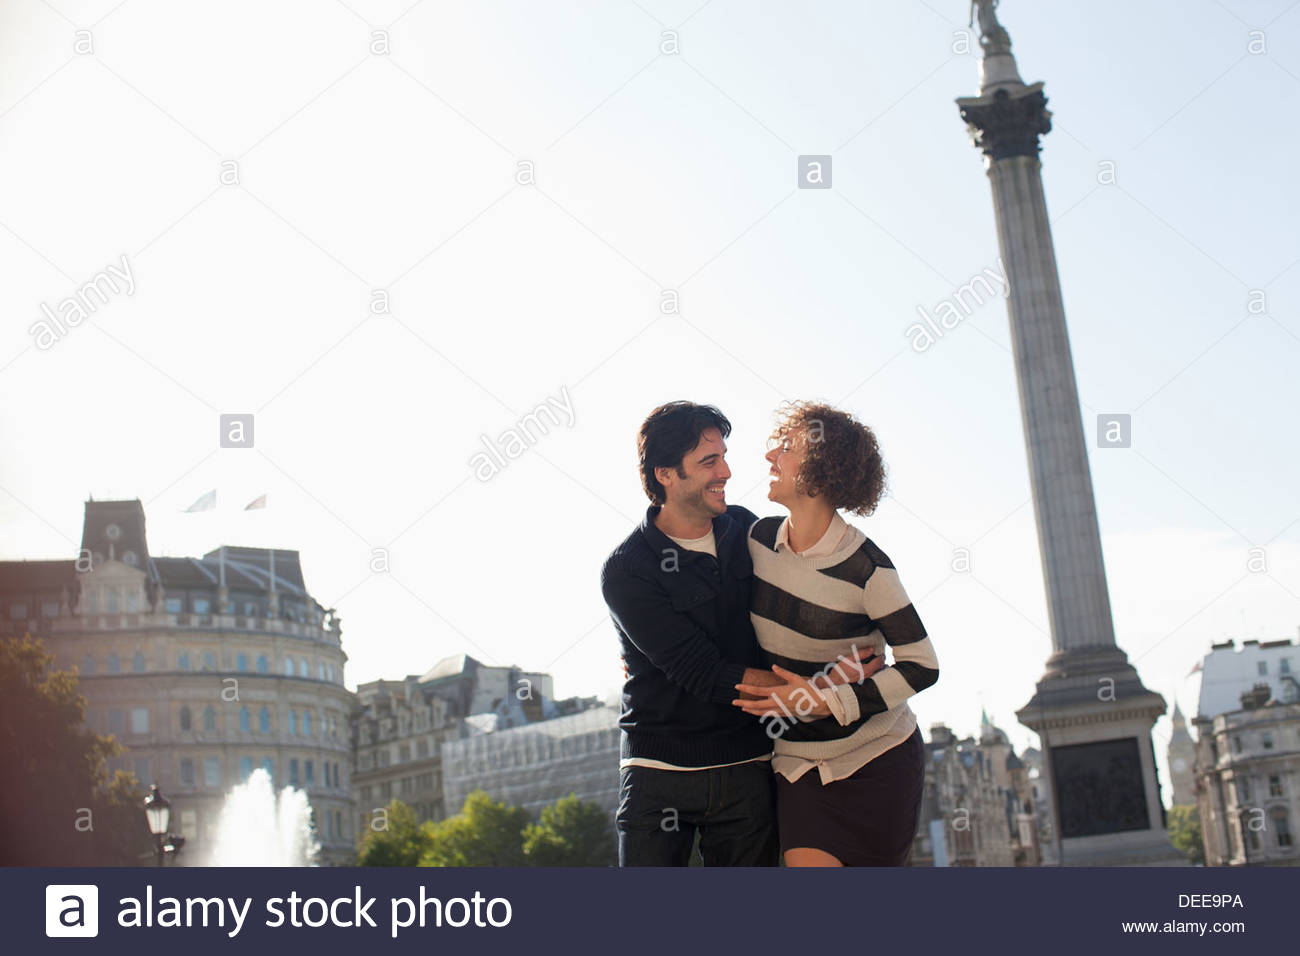 Couple hugging under monument in London - Stock Image